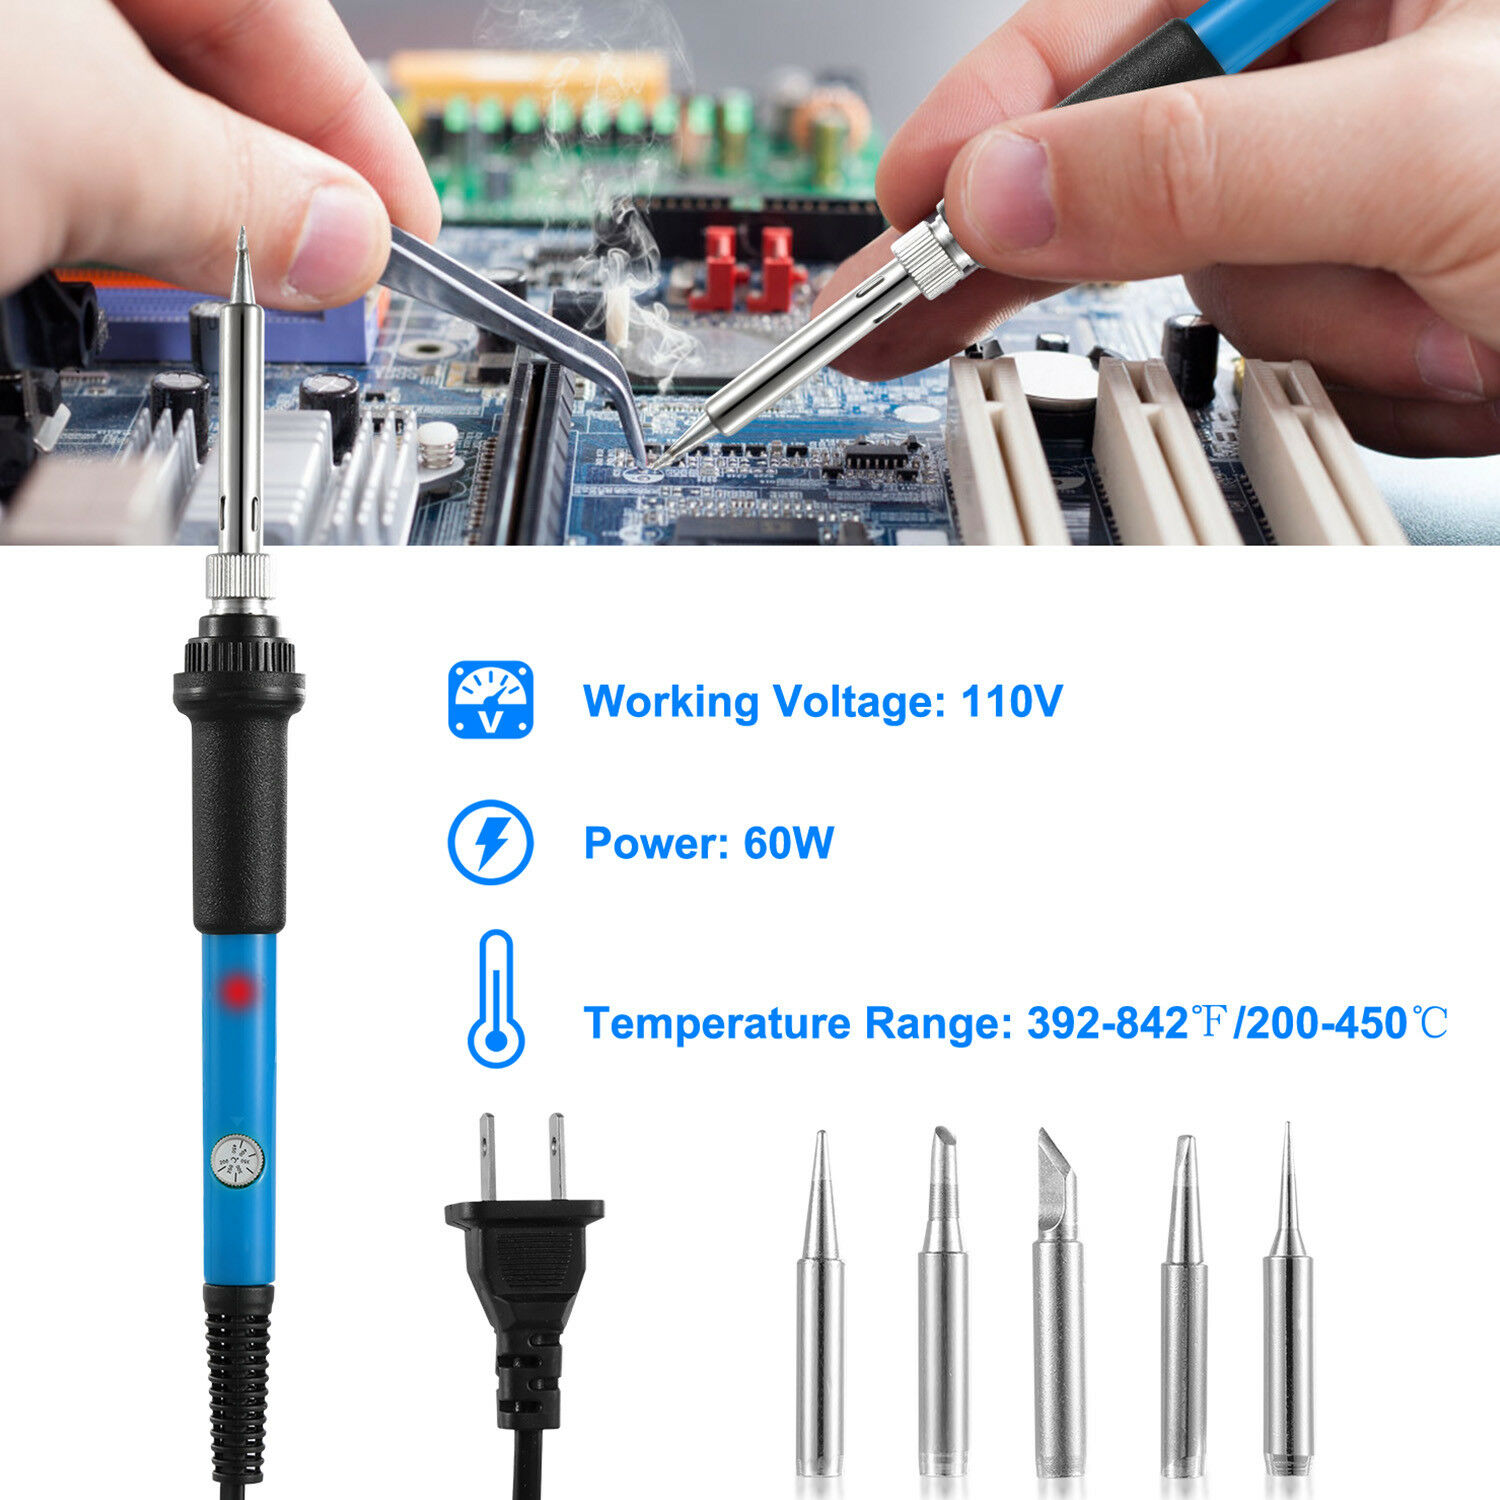 220V 110V 60W Adjustable Temperature Electric Soldering Iron Welding Solder Rework Station Heat Pencil 5pcs Tips Repair Tool